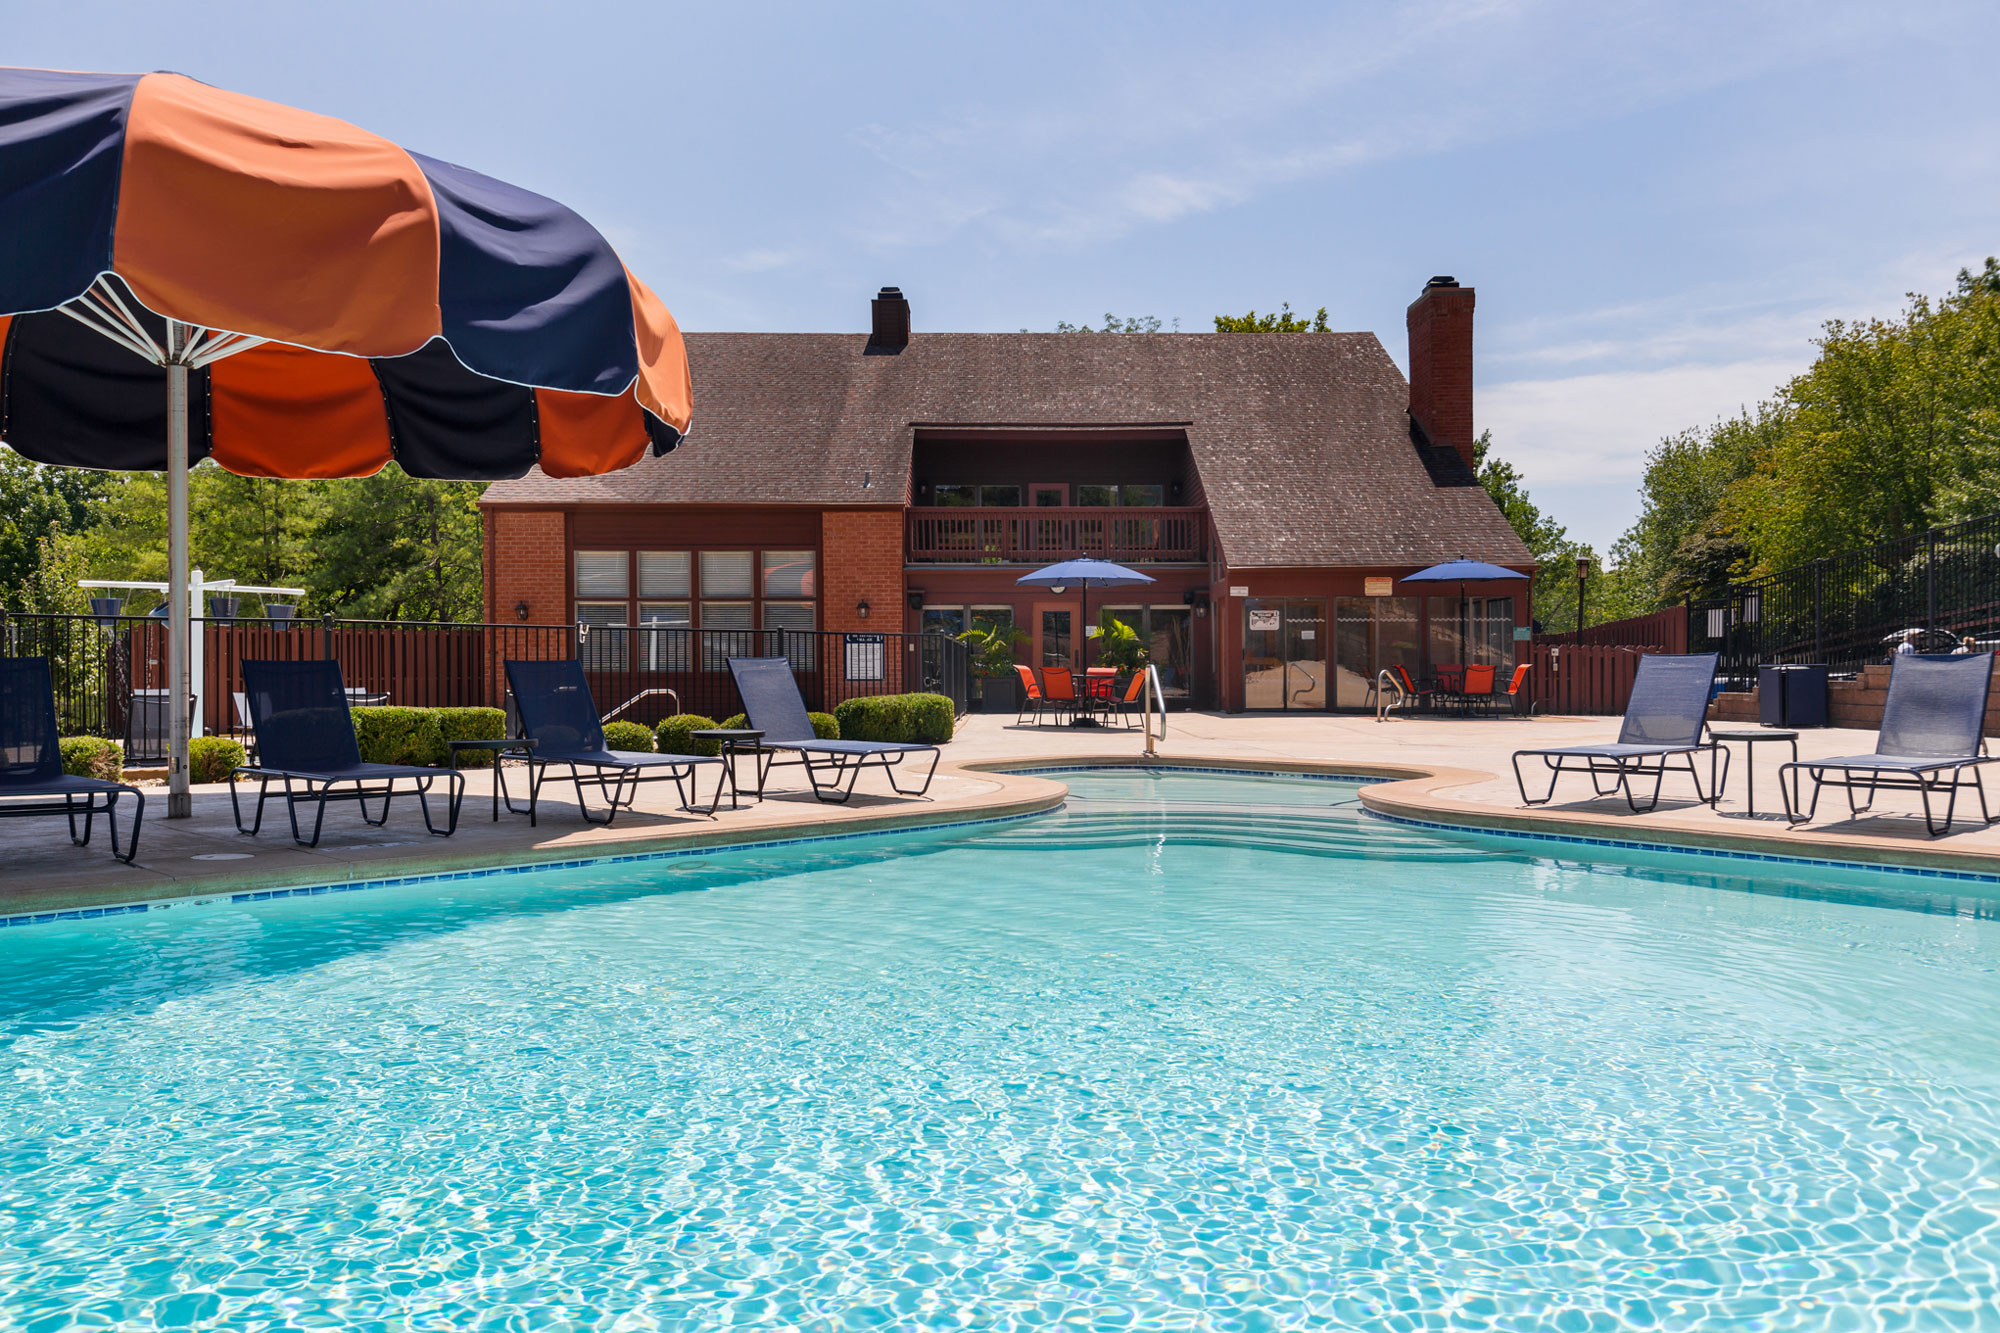 The Chesterfield Village Apartments clubhouse with a foreground of the swimming pool